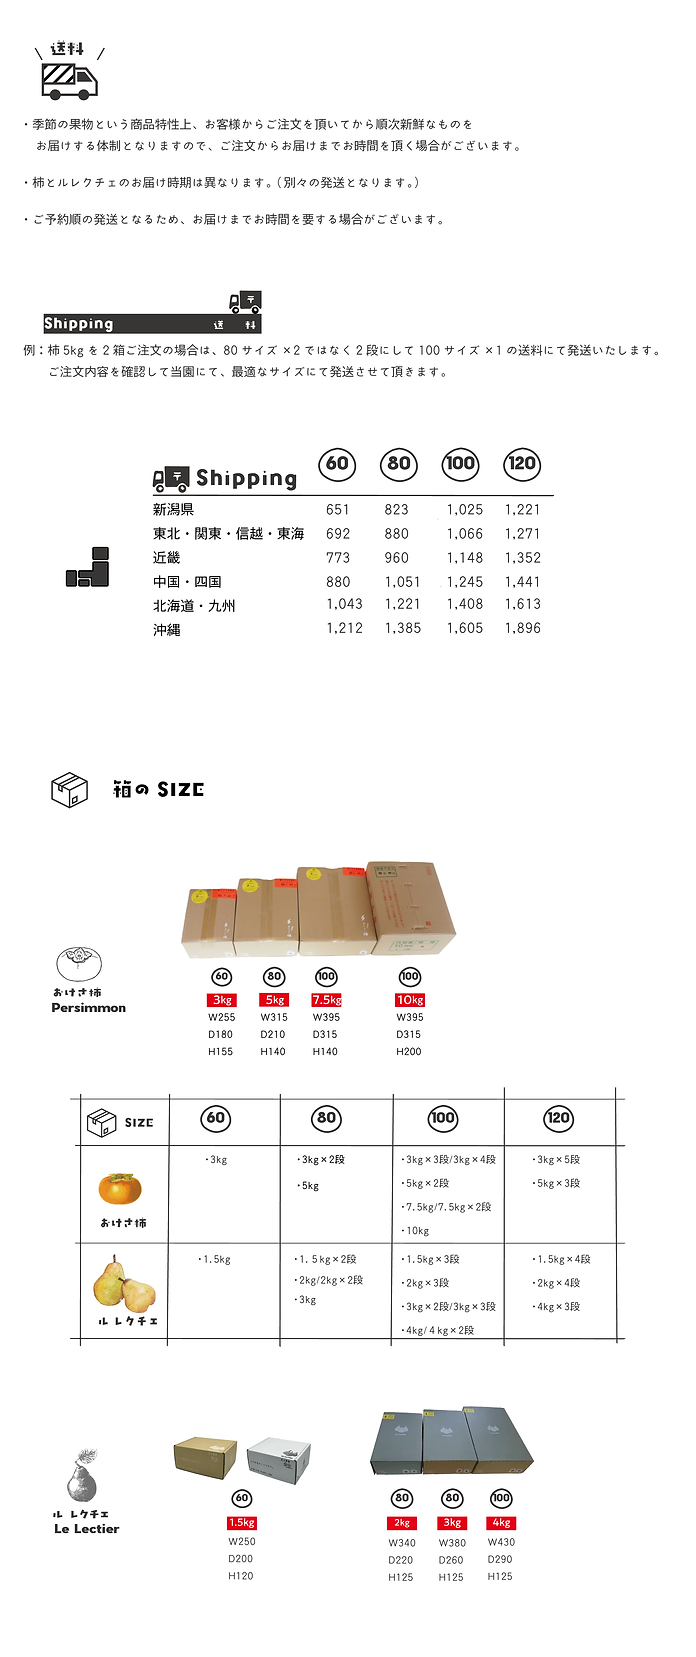 PRICE2020配送料.png